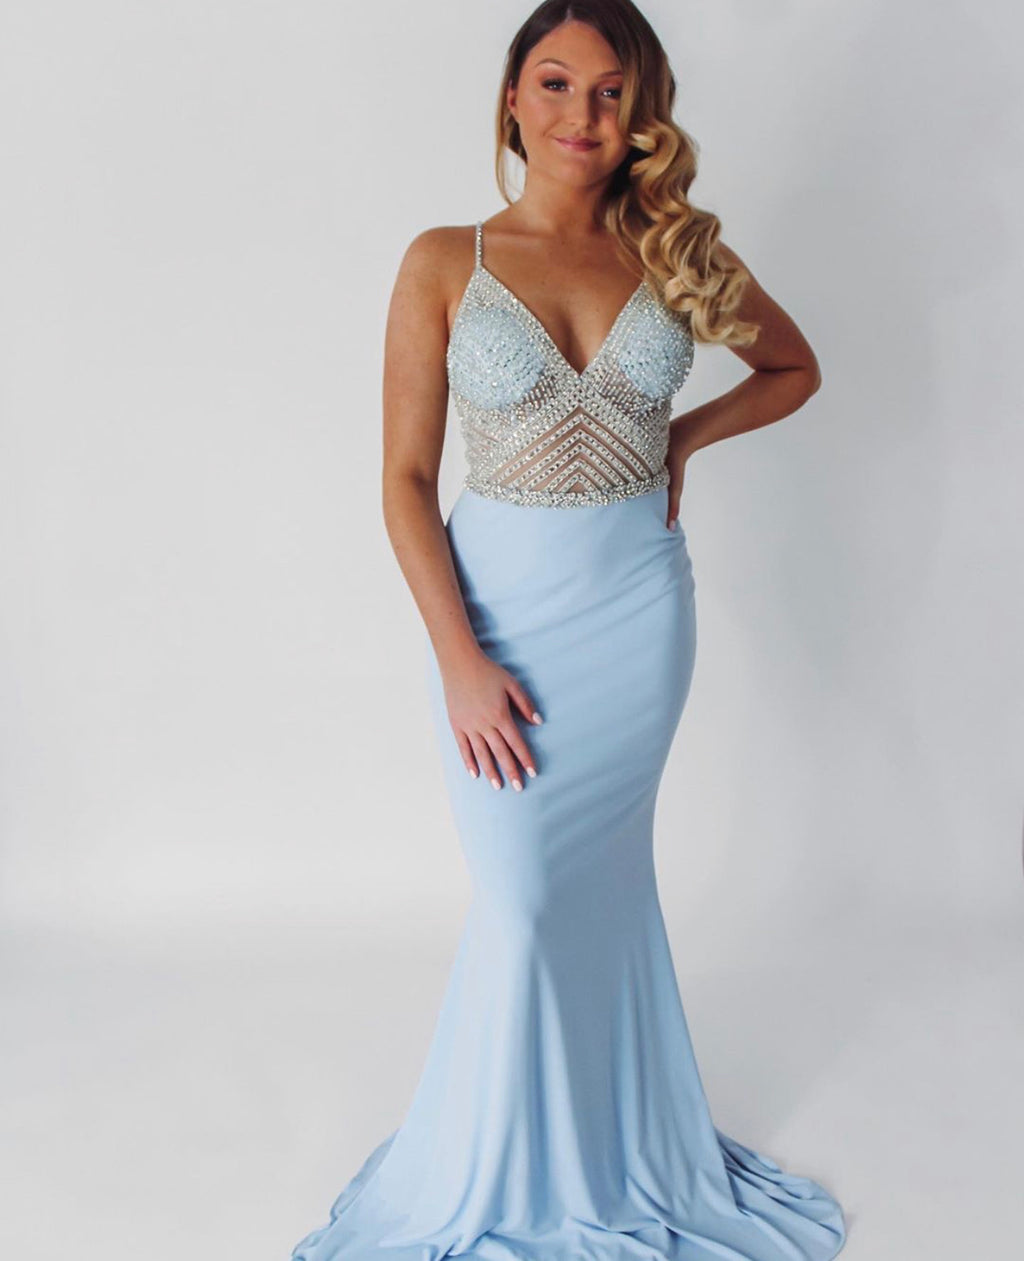 Jovani Sample Gown - Baby Blue